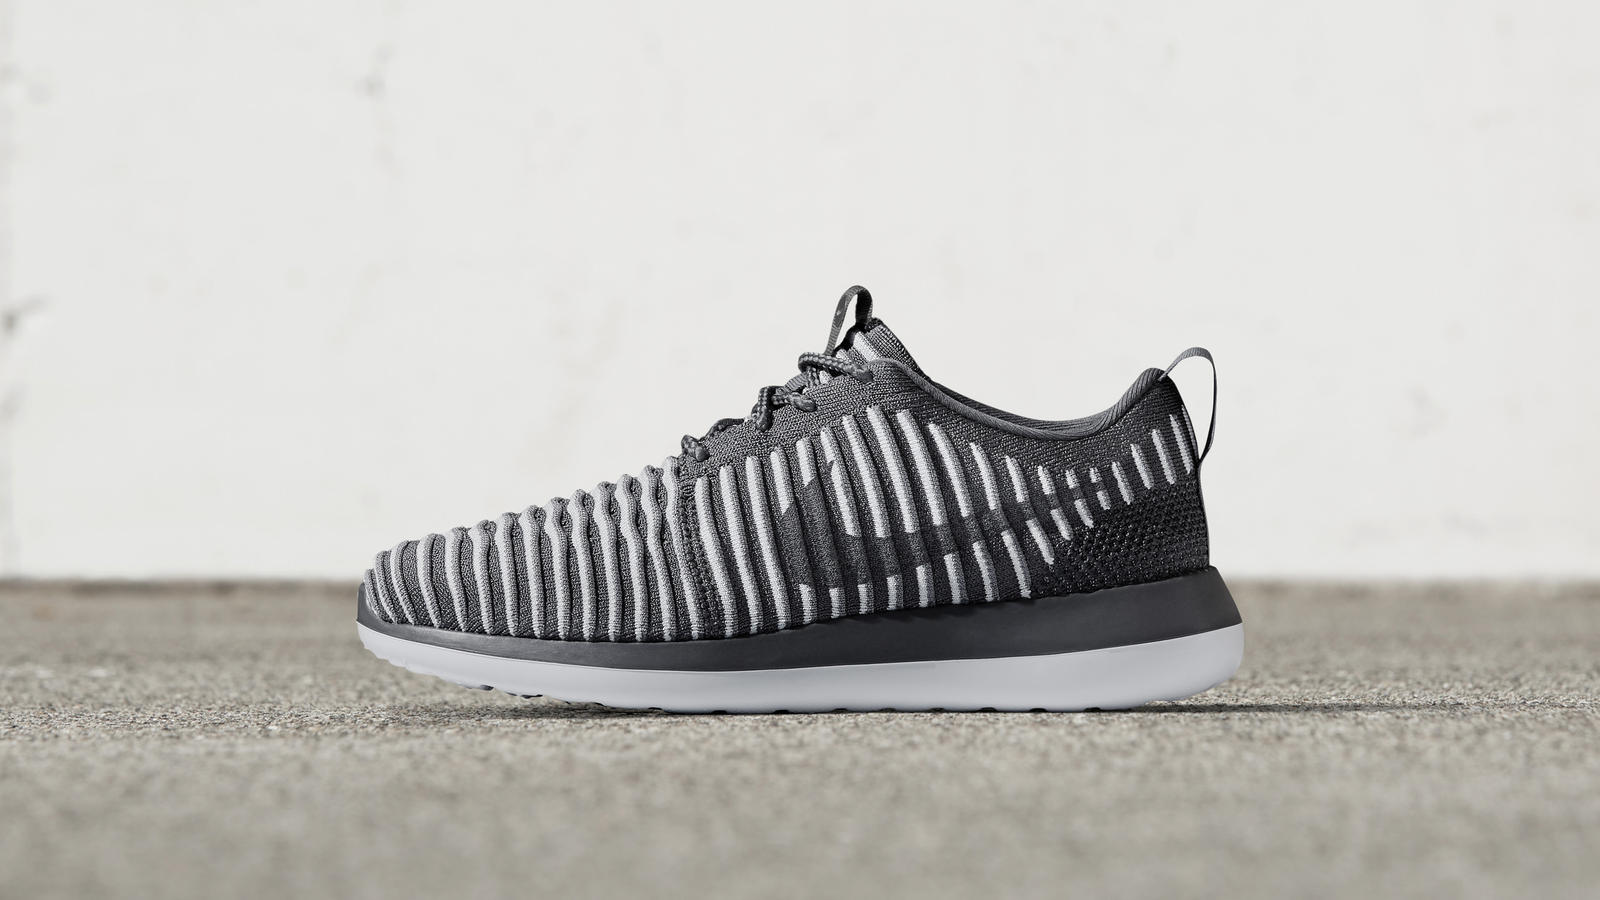 newest 8f506 d723b Nike Roshe Two Flyknit - Nike News